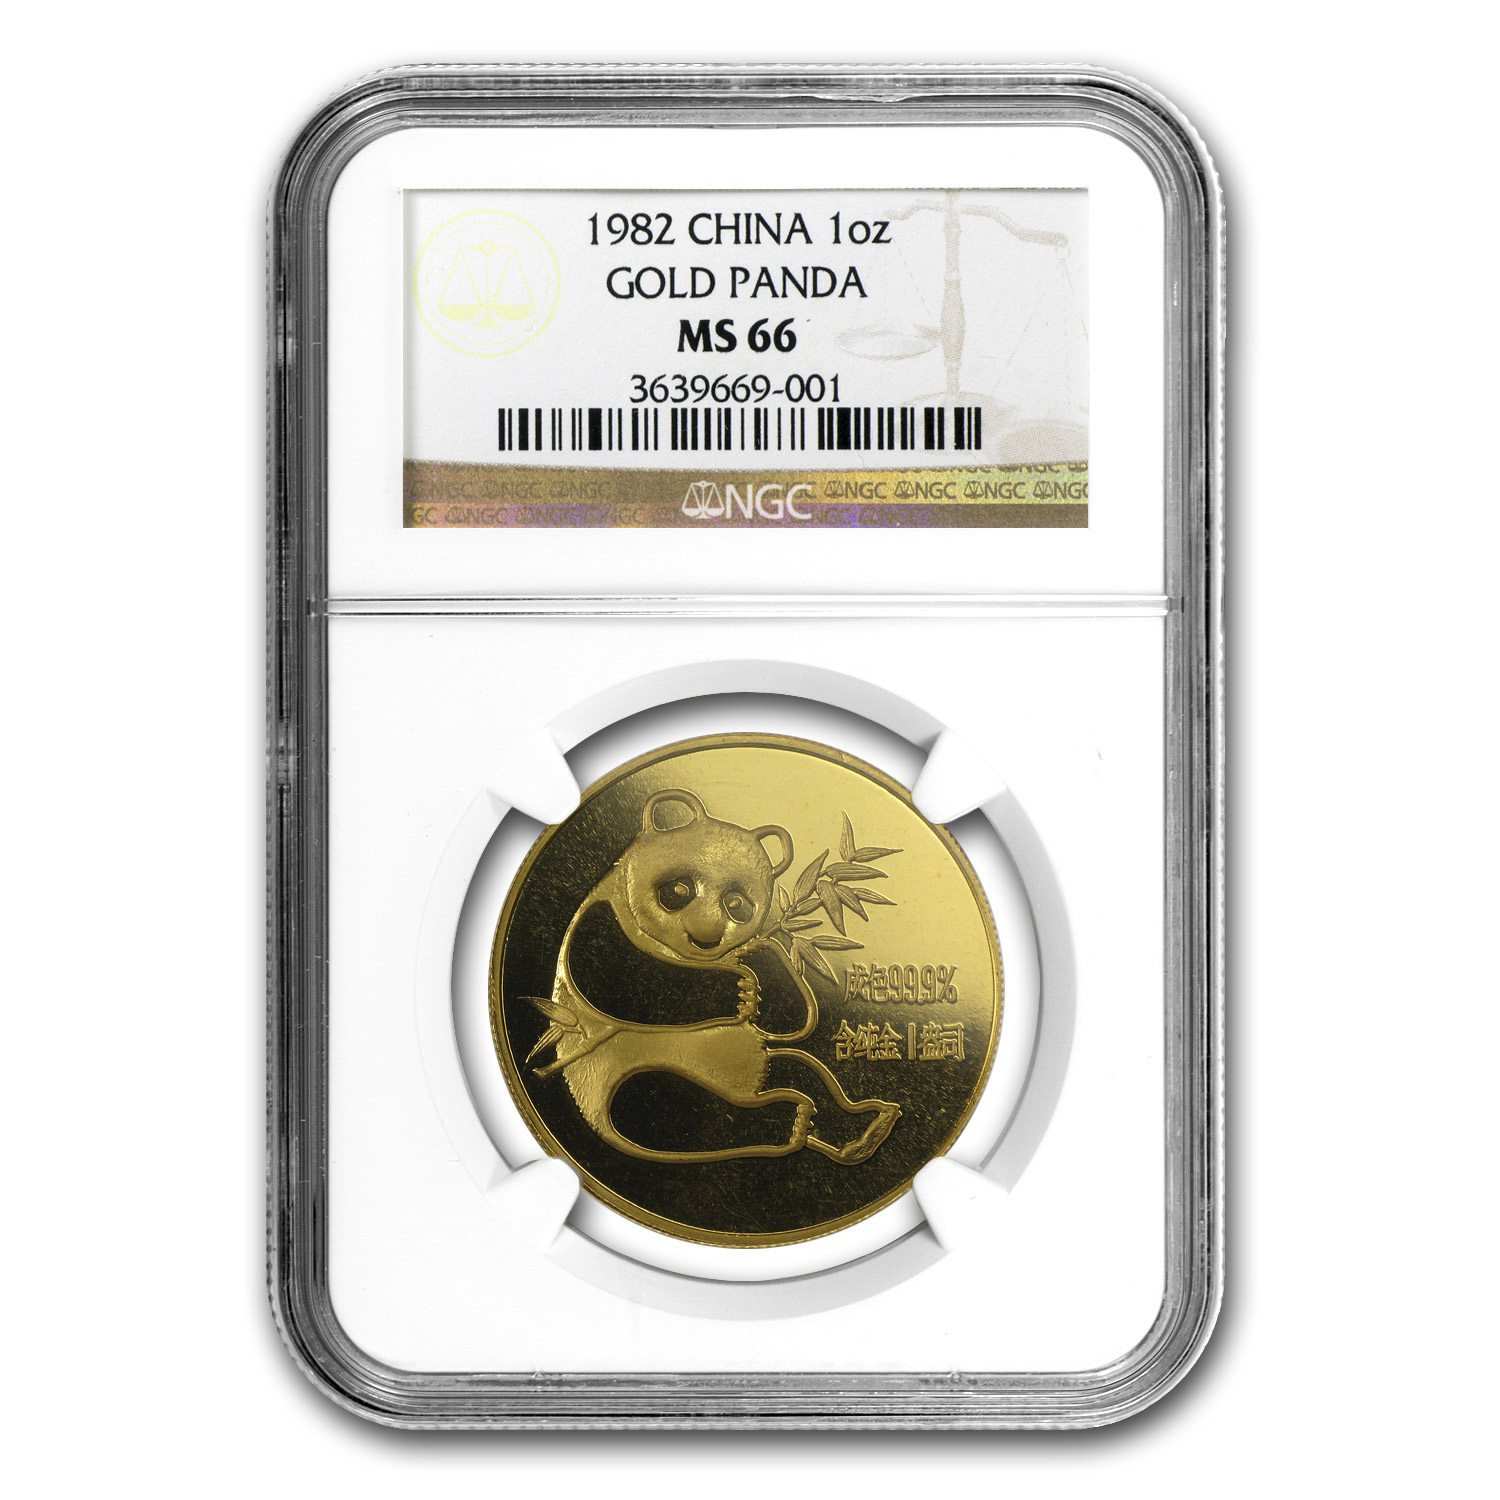 1982 China 1 oz Gold Panda MS-66 NGC